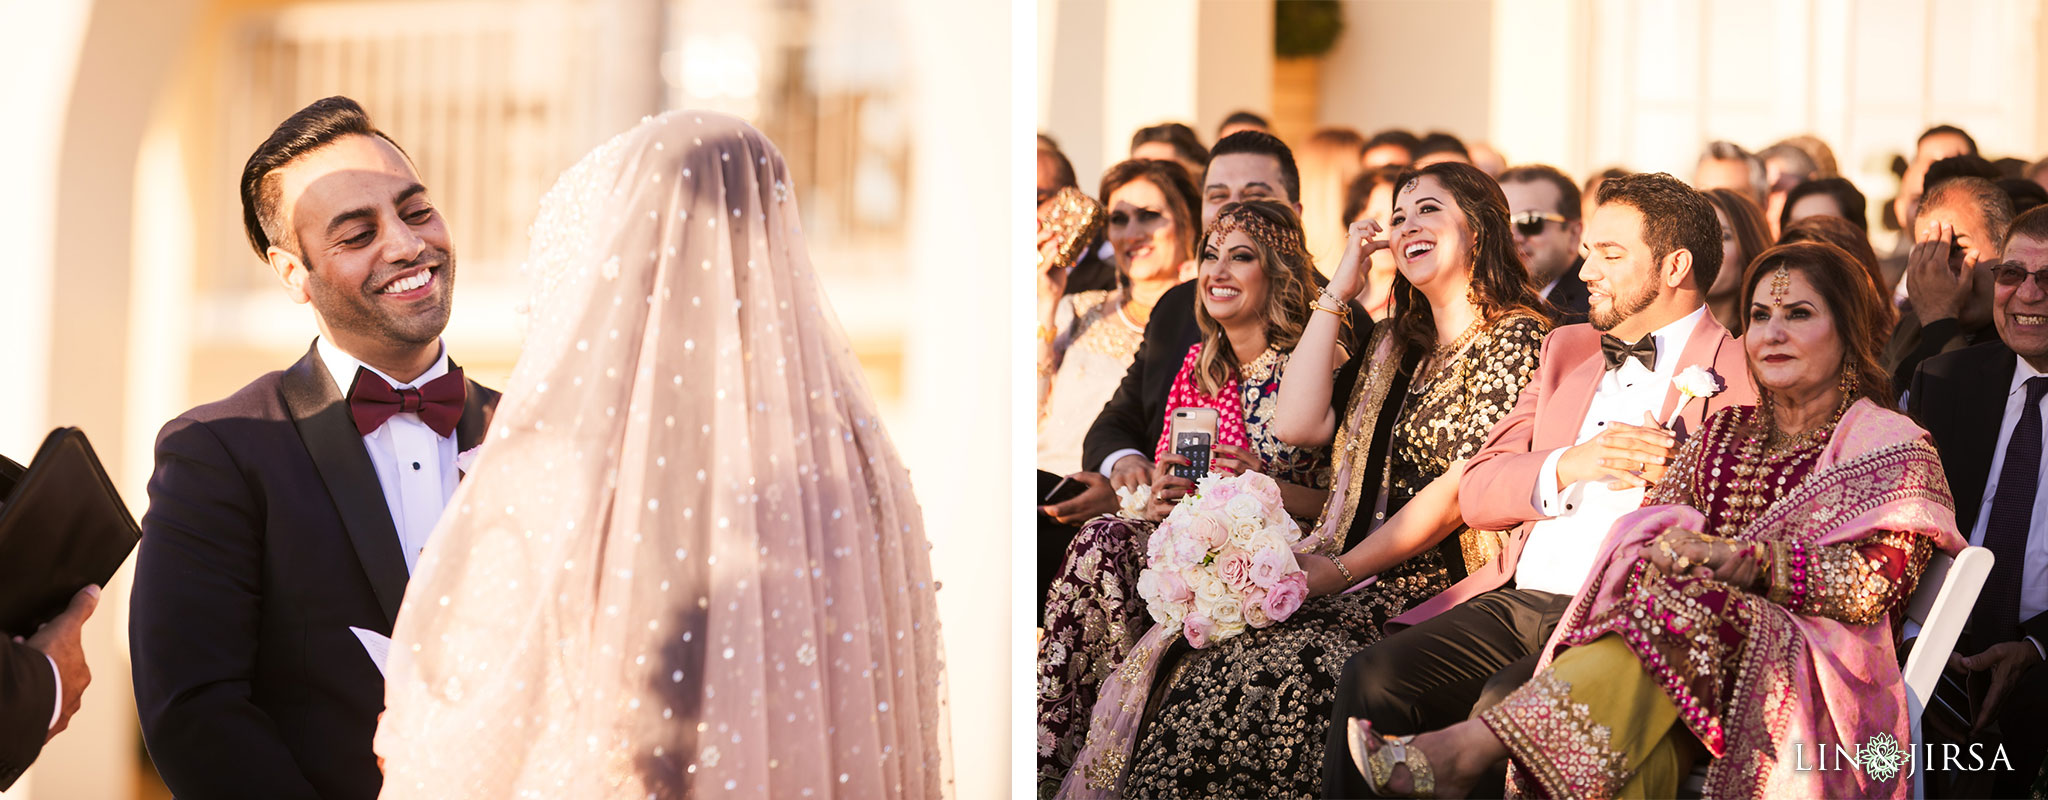 020 ritz carlton laguna niguel south asian wedding ceremony photography